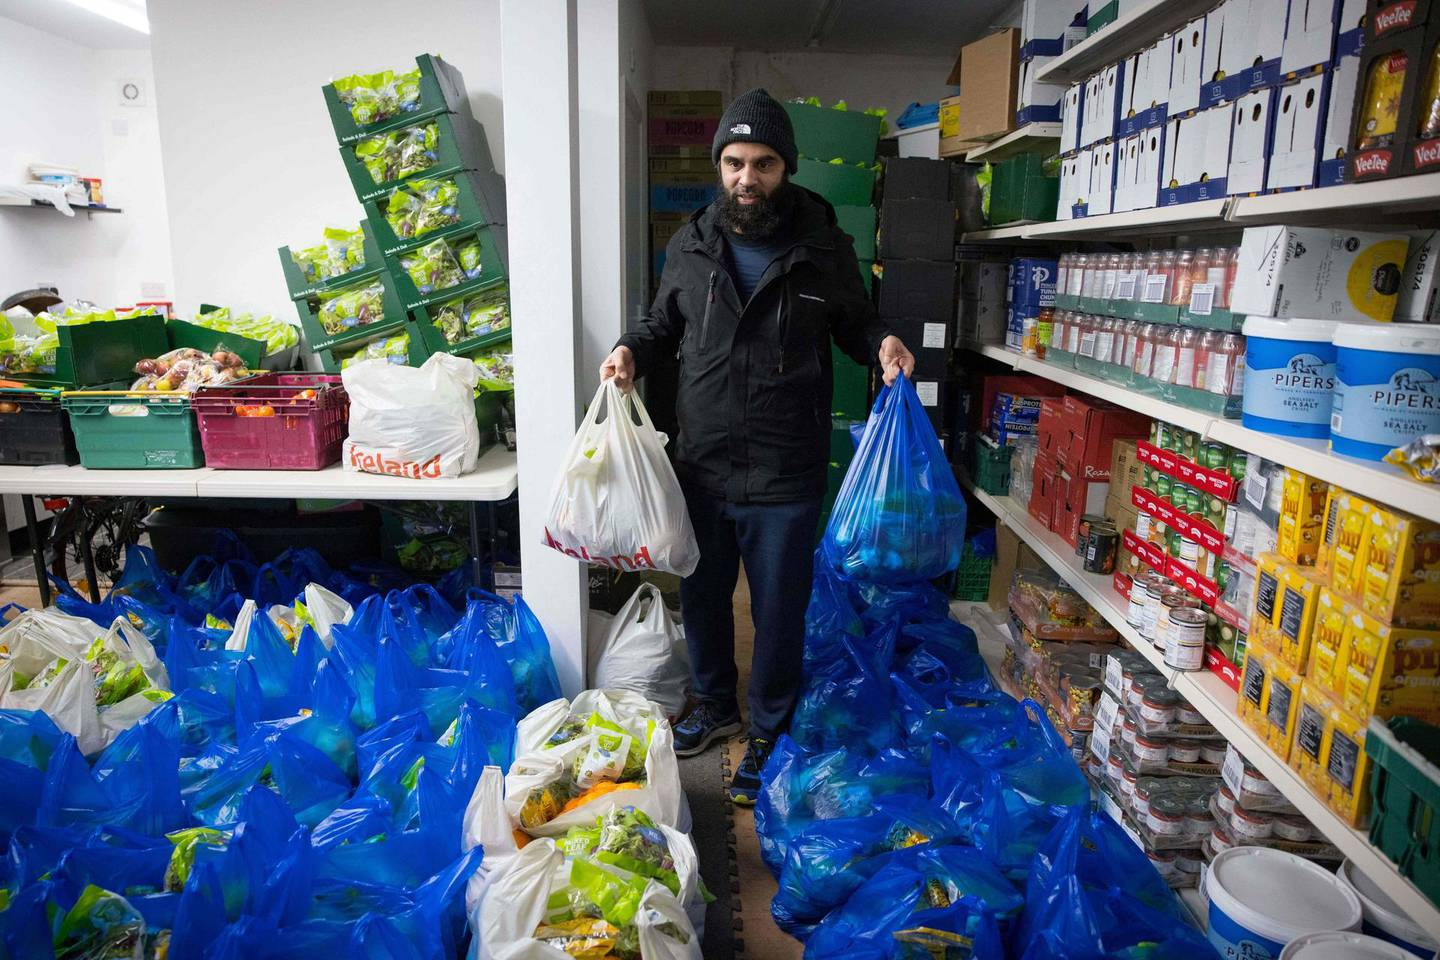 """Elyas Ismail, founder of the Newham Community Project food bank, organises food packages ahead of their collection by international students, in east London on February 16, 2021. """"It's hard to buy food, the prices are so much higher than in India"""": without work or state aid, young foreign students, like Jay Patel, came to the United Kingdom to realise their dreams are plunged into poverty because of the pandemic. Despite the rain, dozens of young people like him, hoods on their heads and shopping bags in their hands, congregate in front of the small room of the Newham Community Project association, in East London, to collect rice, vegetables and other foodstuffs. The Newham Community Project, in partnership with Abdullah Aid, provides a weekly food bank service where food and essentials are provided to over 1000 students every week. / AFP / TOLGA AKMEN / TO GO WITH AFP STORY by Charlotte DURAND"""